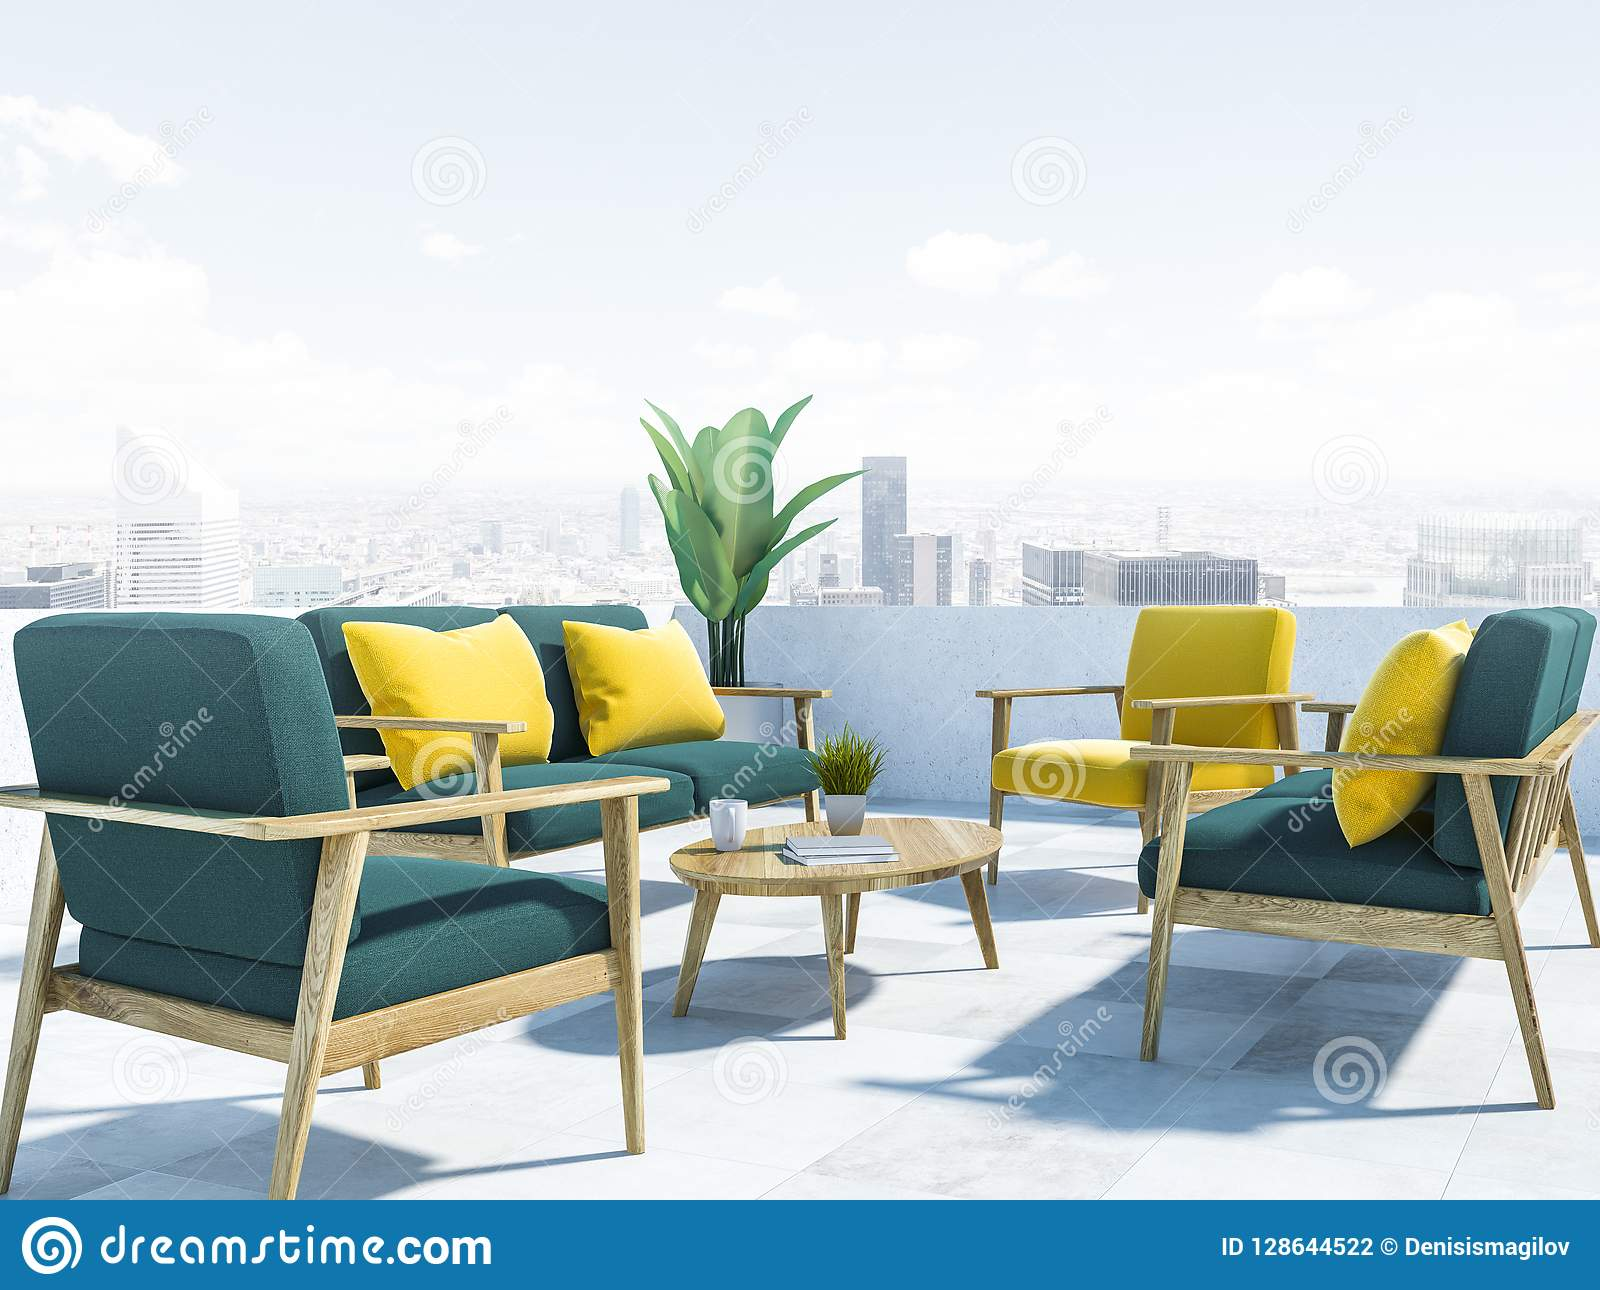 Merveilleux Green Sofas On Balcony, Cityscape Close Up